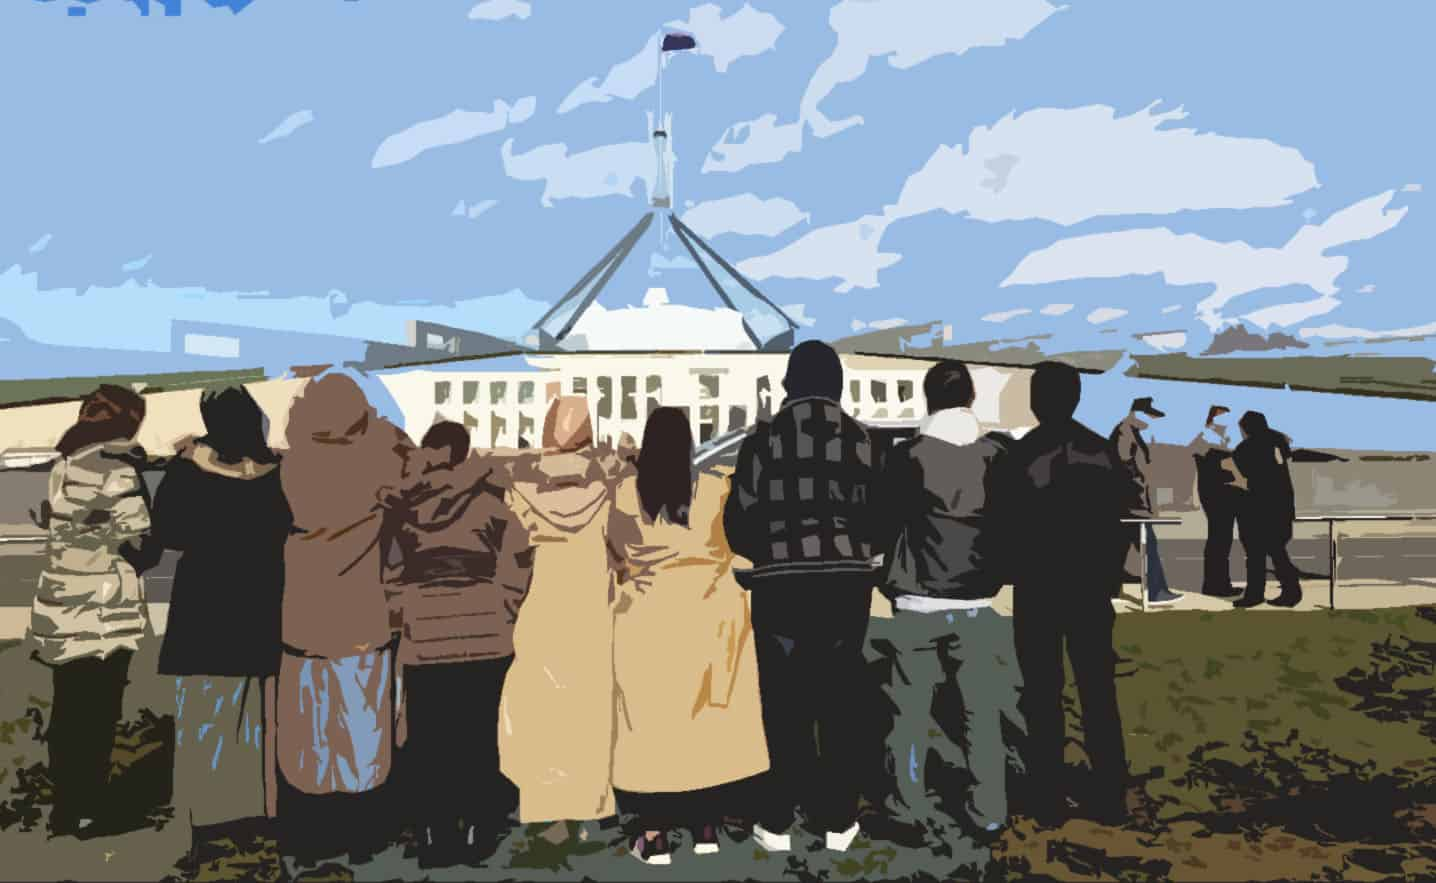 Refugee advocates with backs to camera and in front of Parliament House, in artistic style